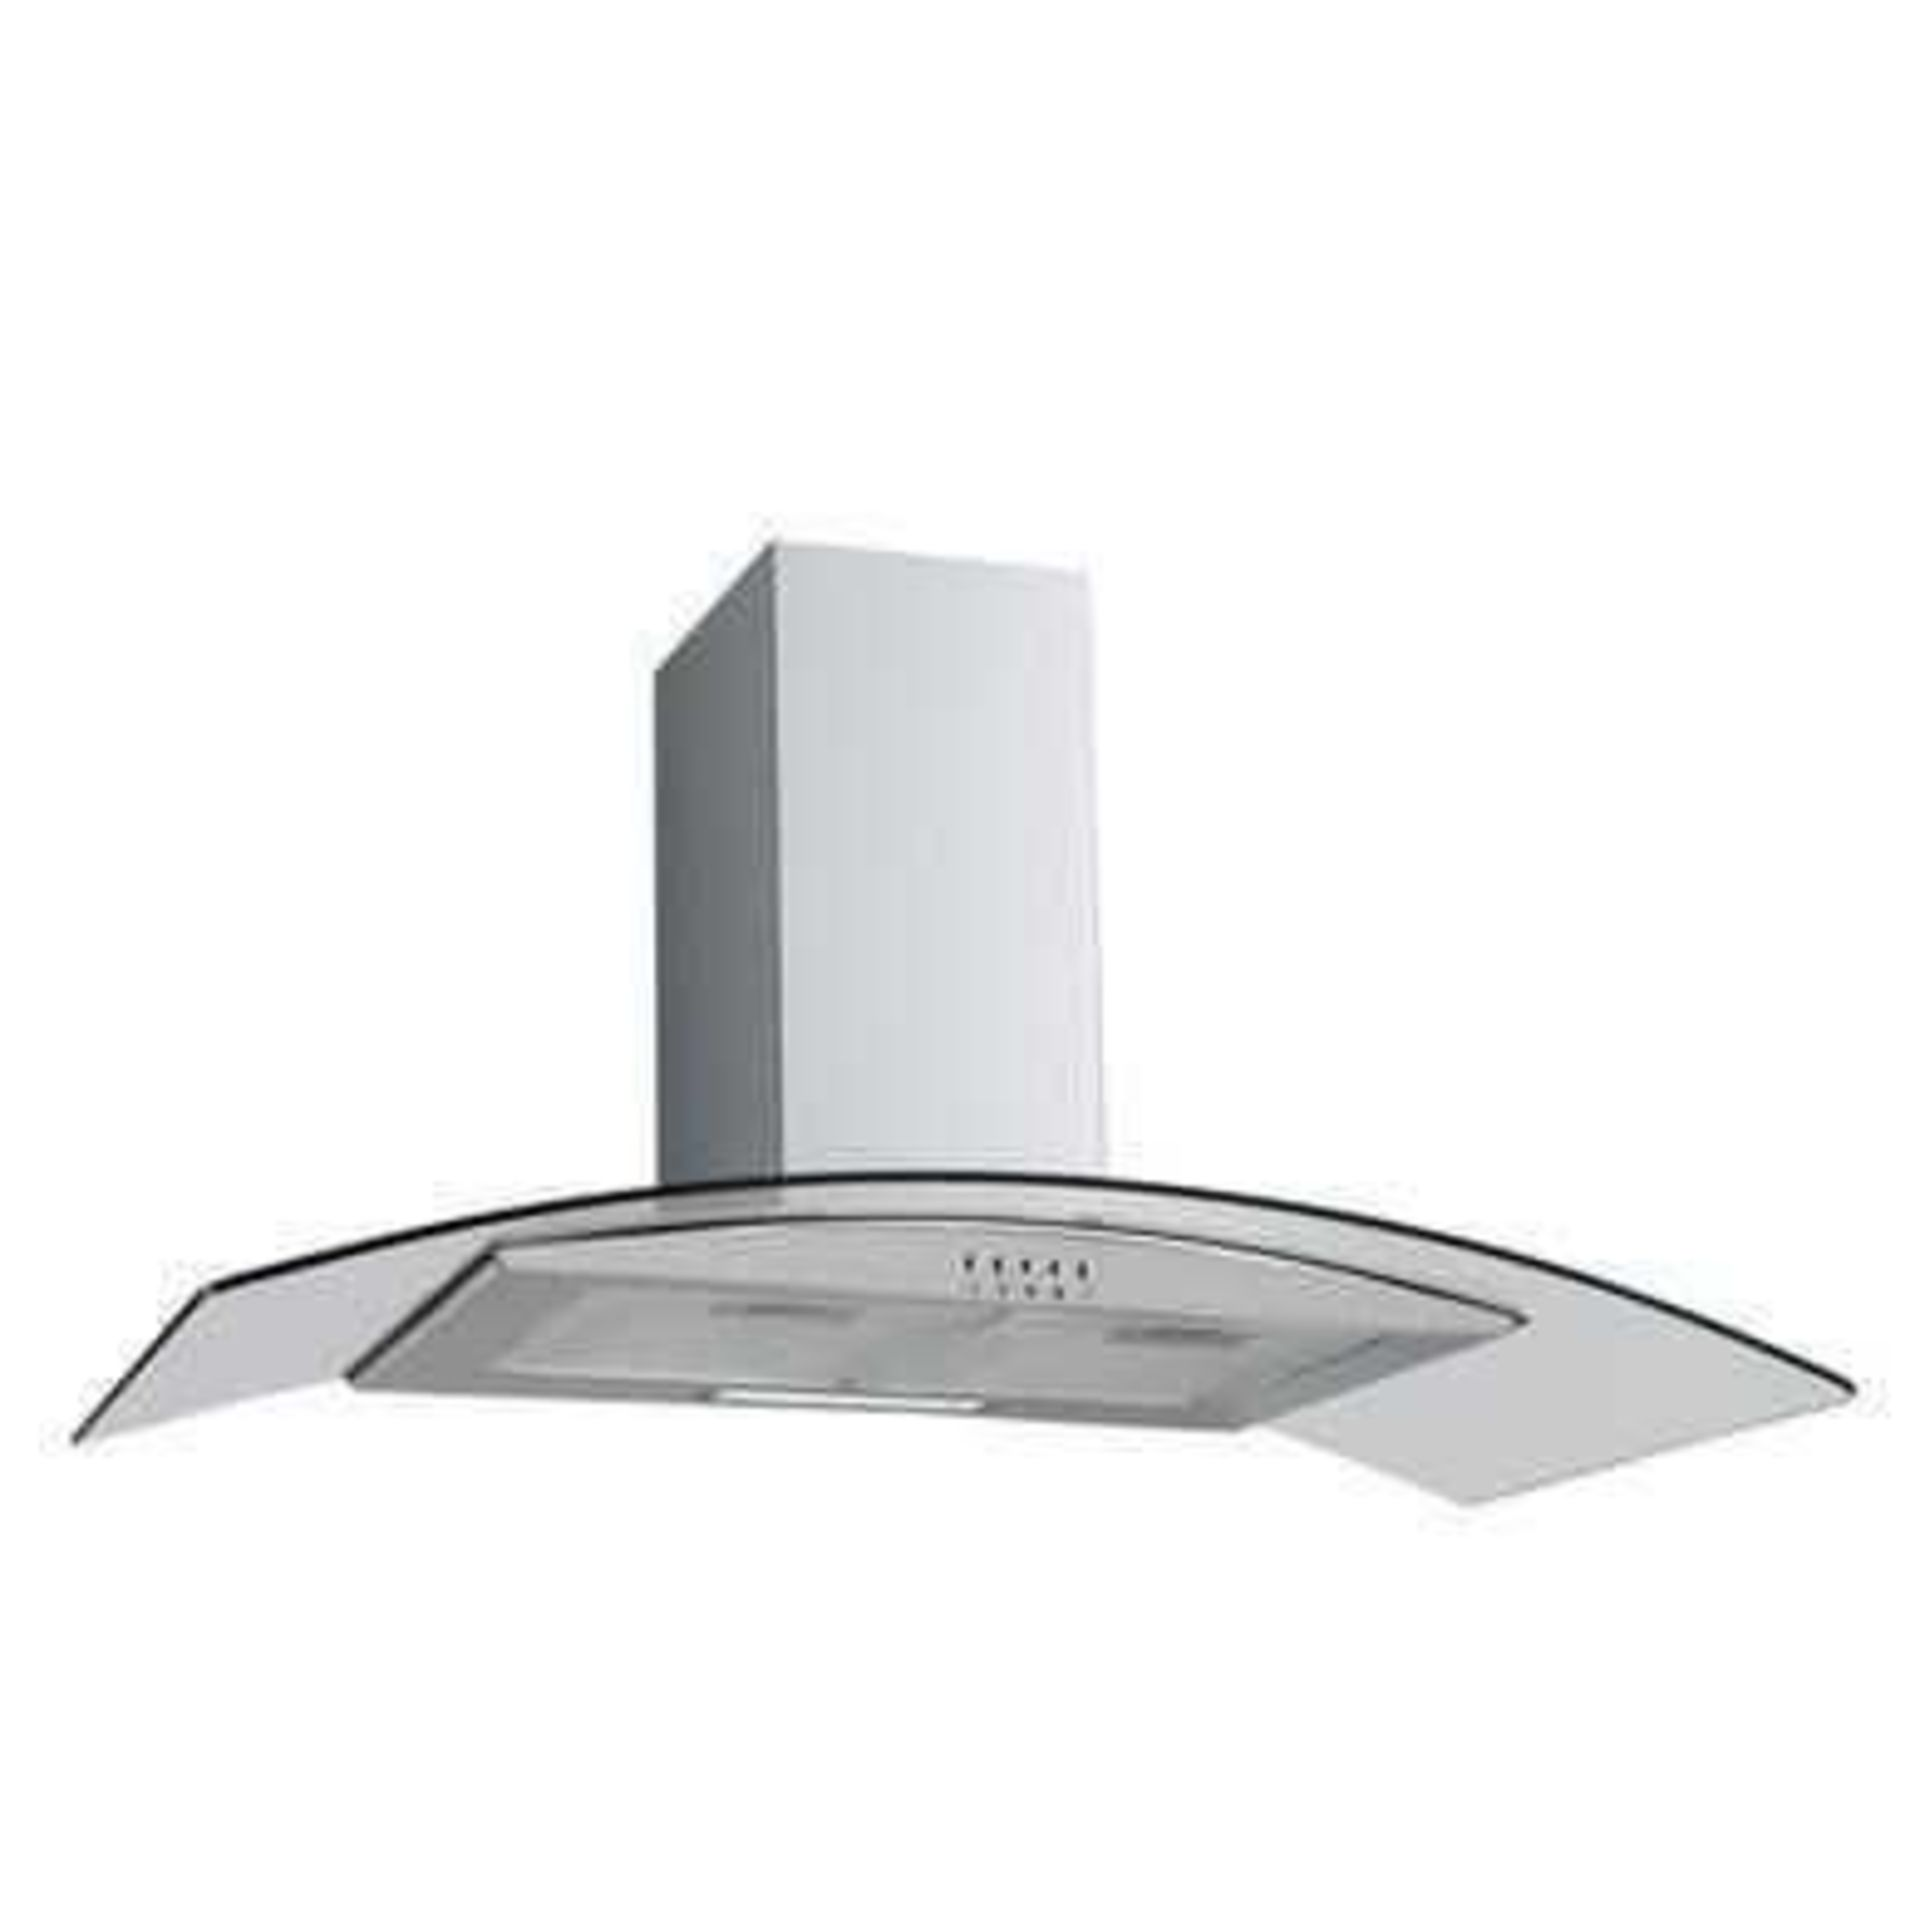 RRP £150 Boxed Culina 60Cm Curved Extractor Hood Stainless Steel